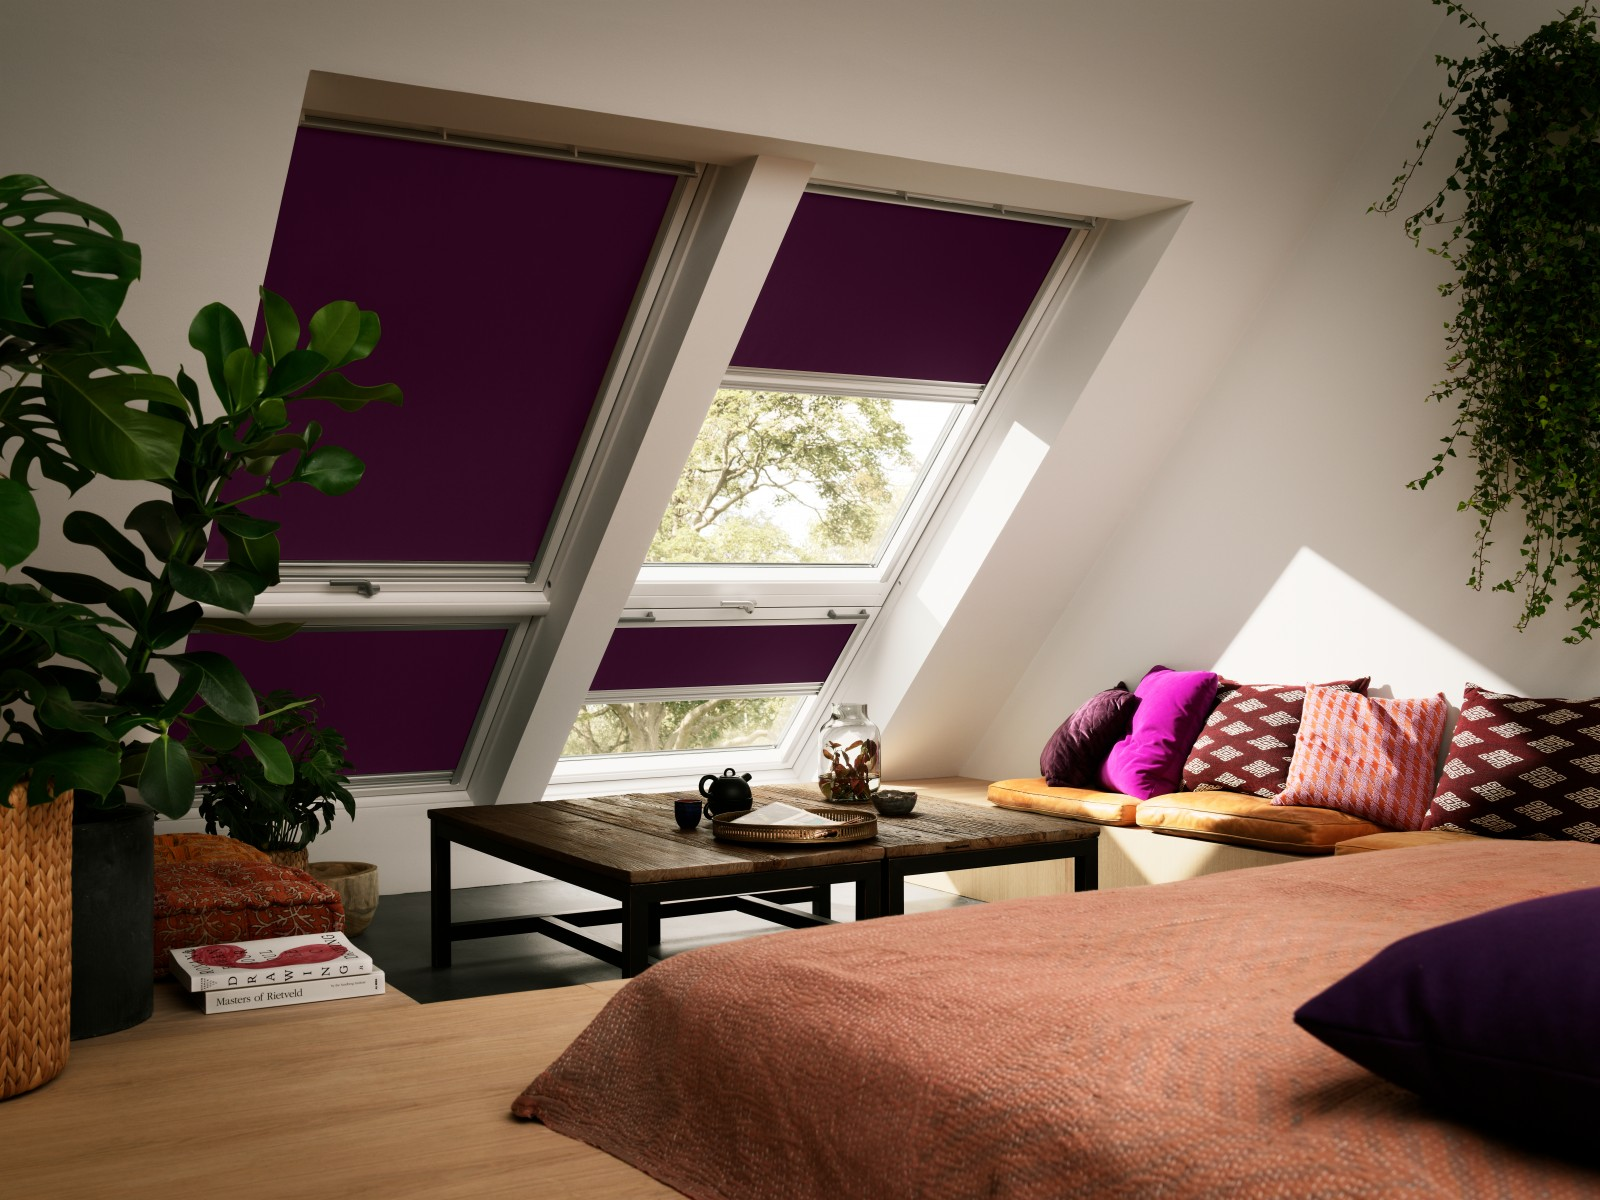 velux remporte le prix de l innovation novibat avec sa. Black Bedroom Furniture Sets. Home Design Ideas